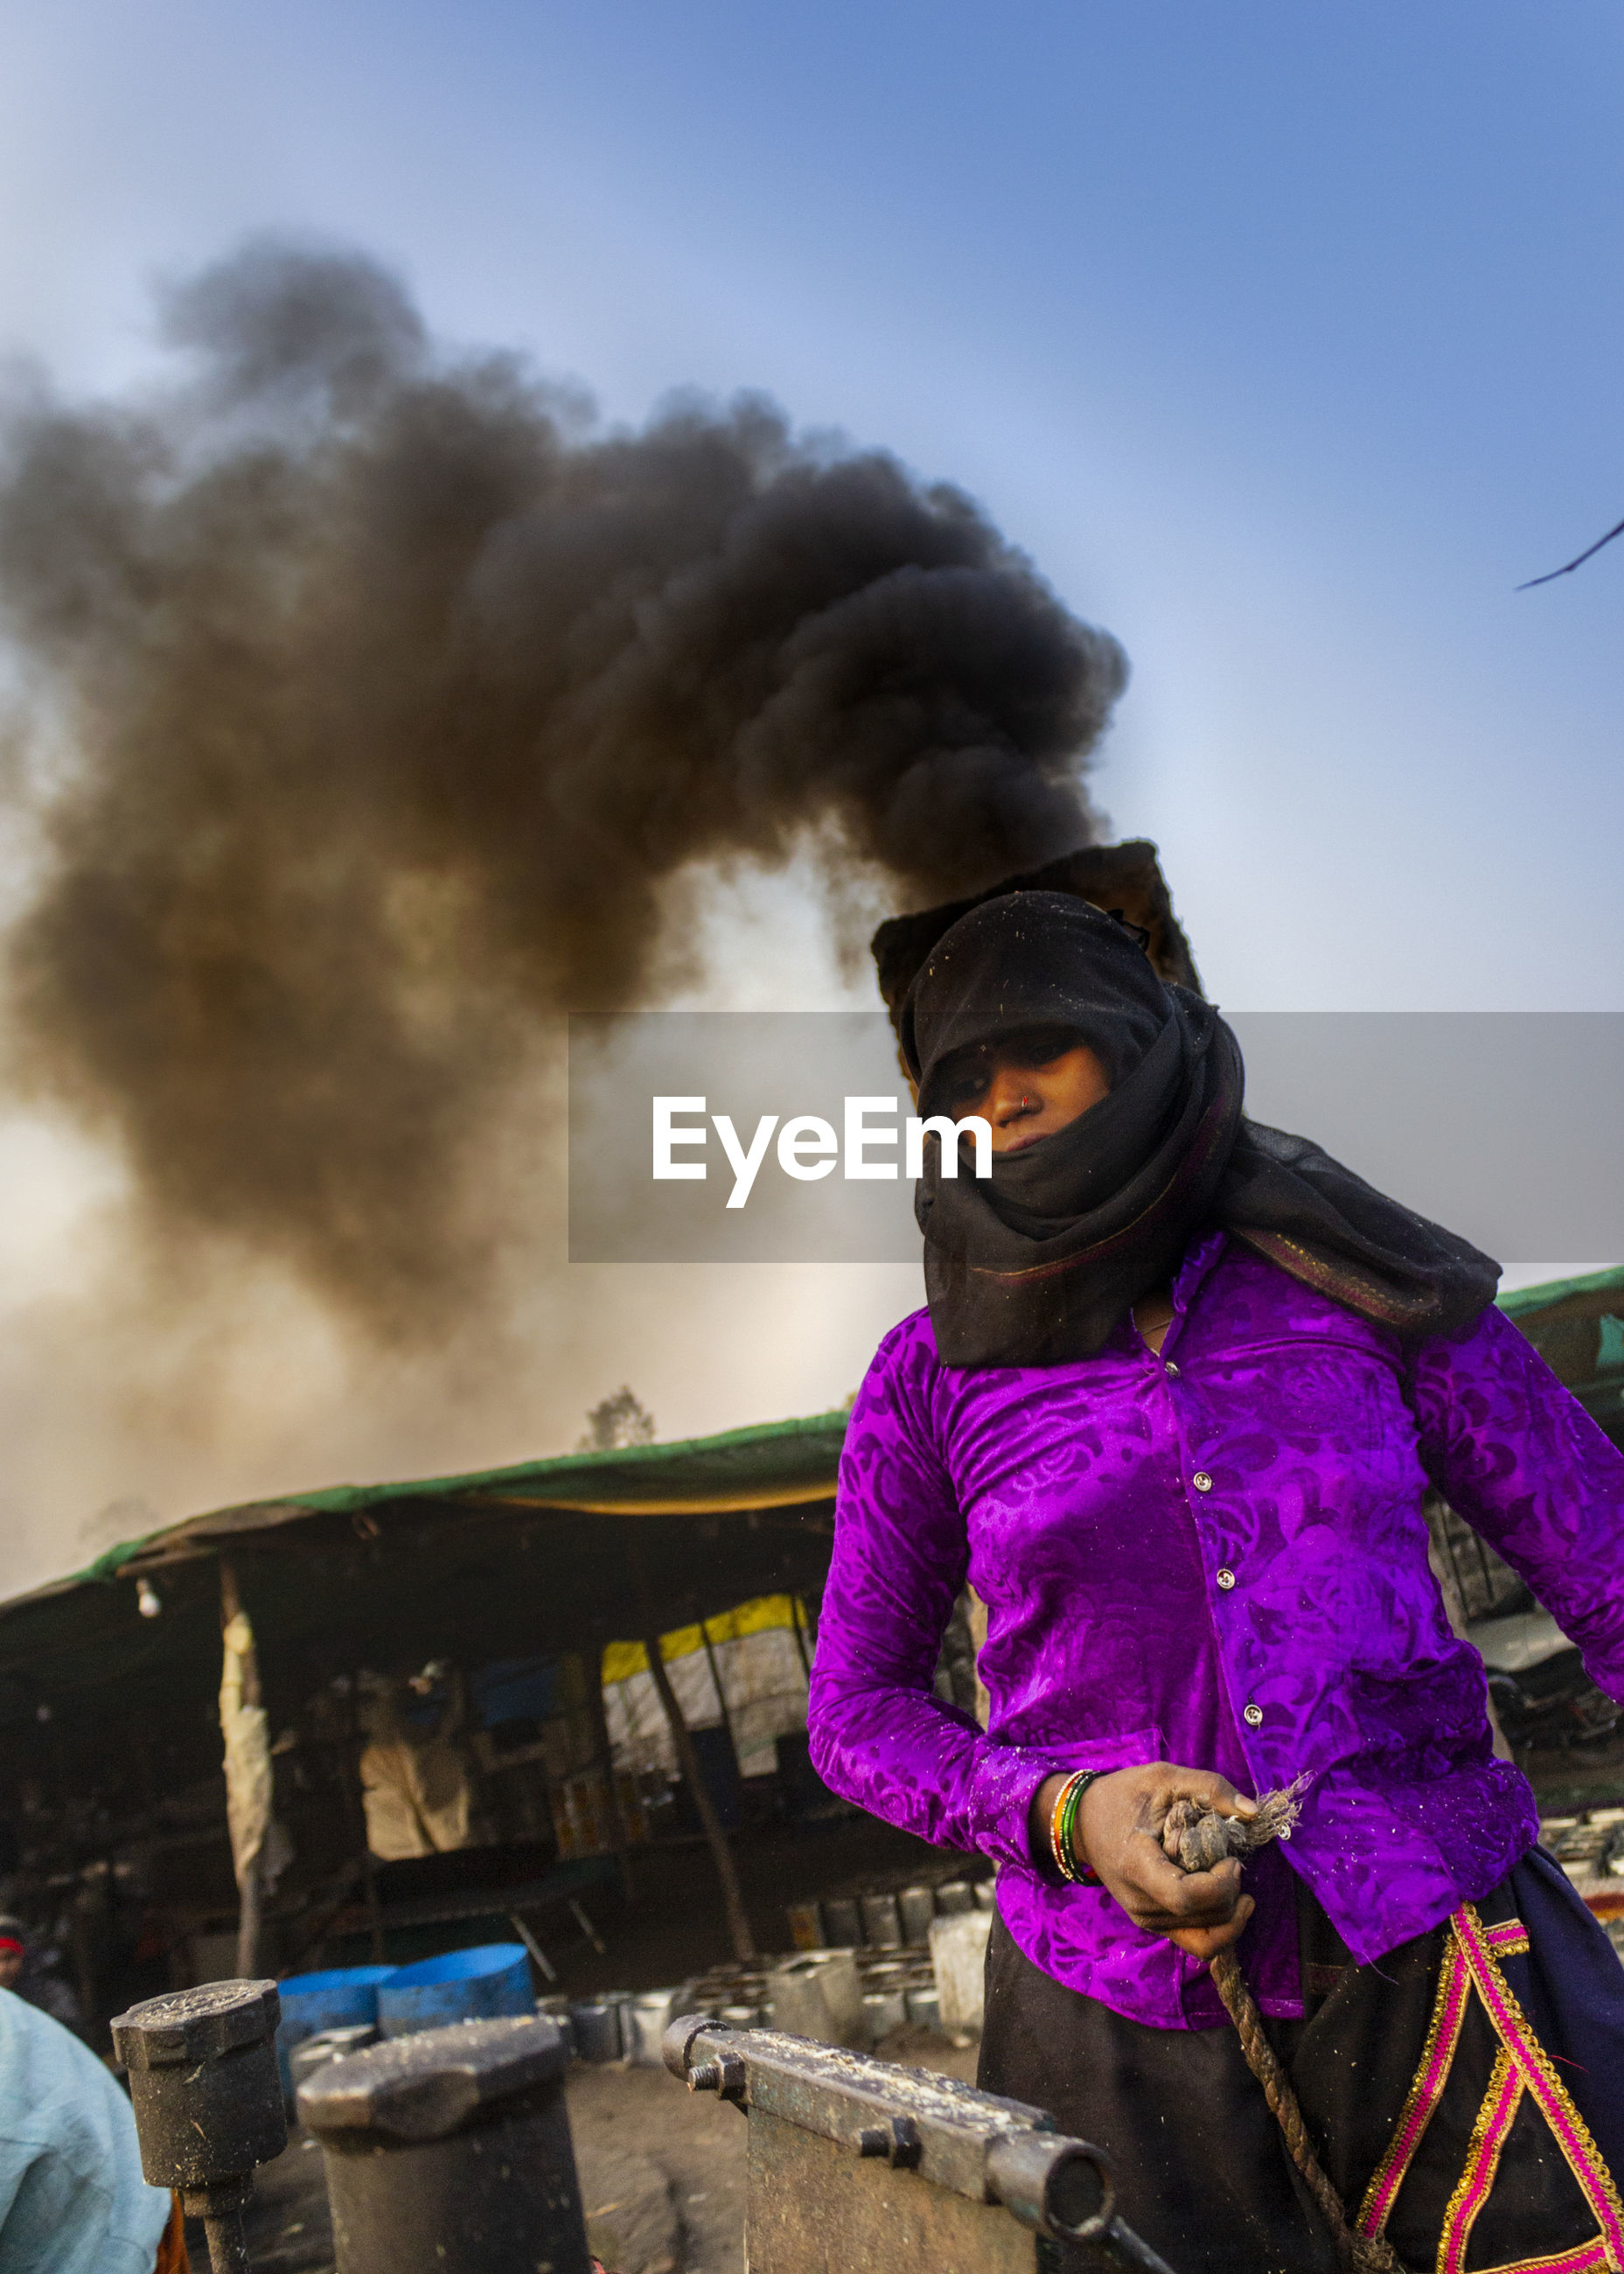 Woman standing at factory emitting smoke against sky